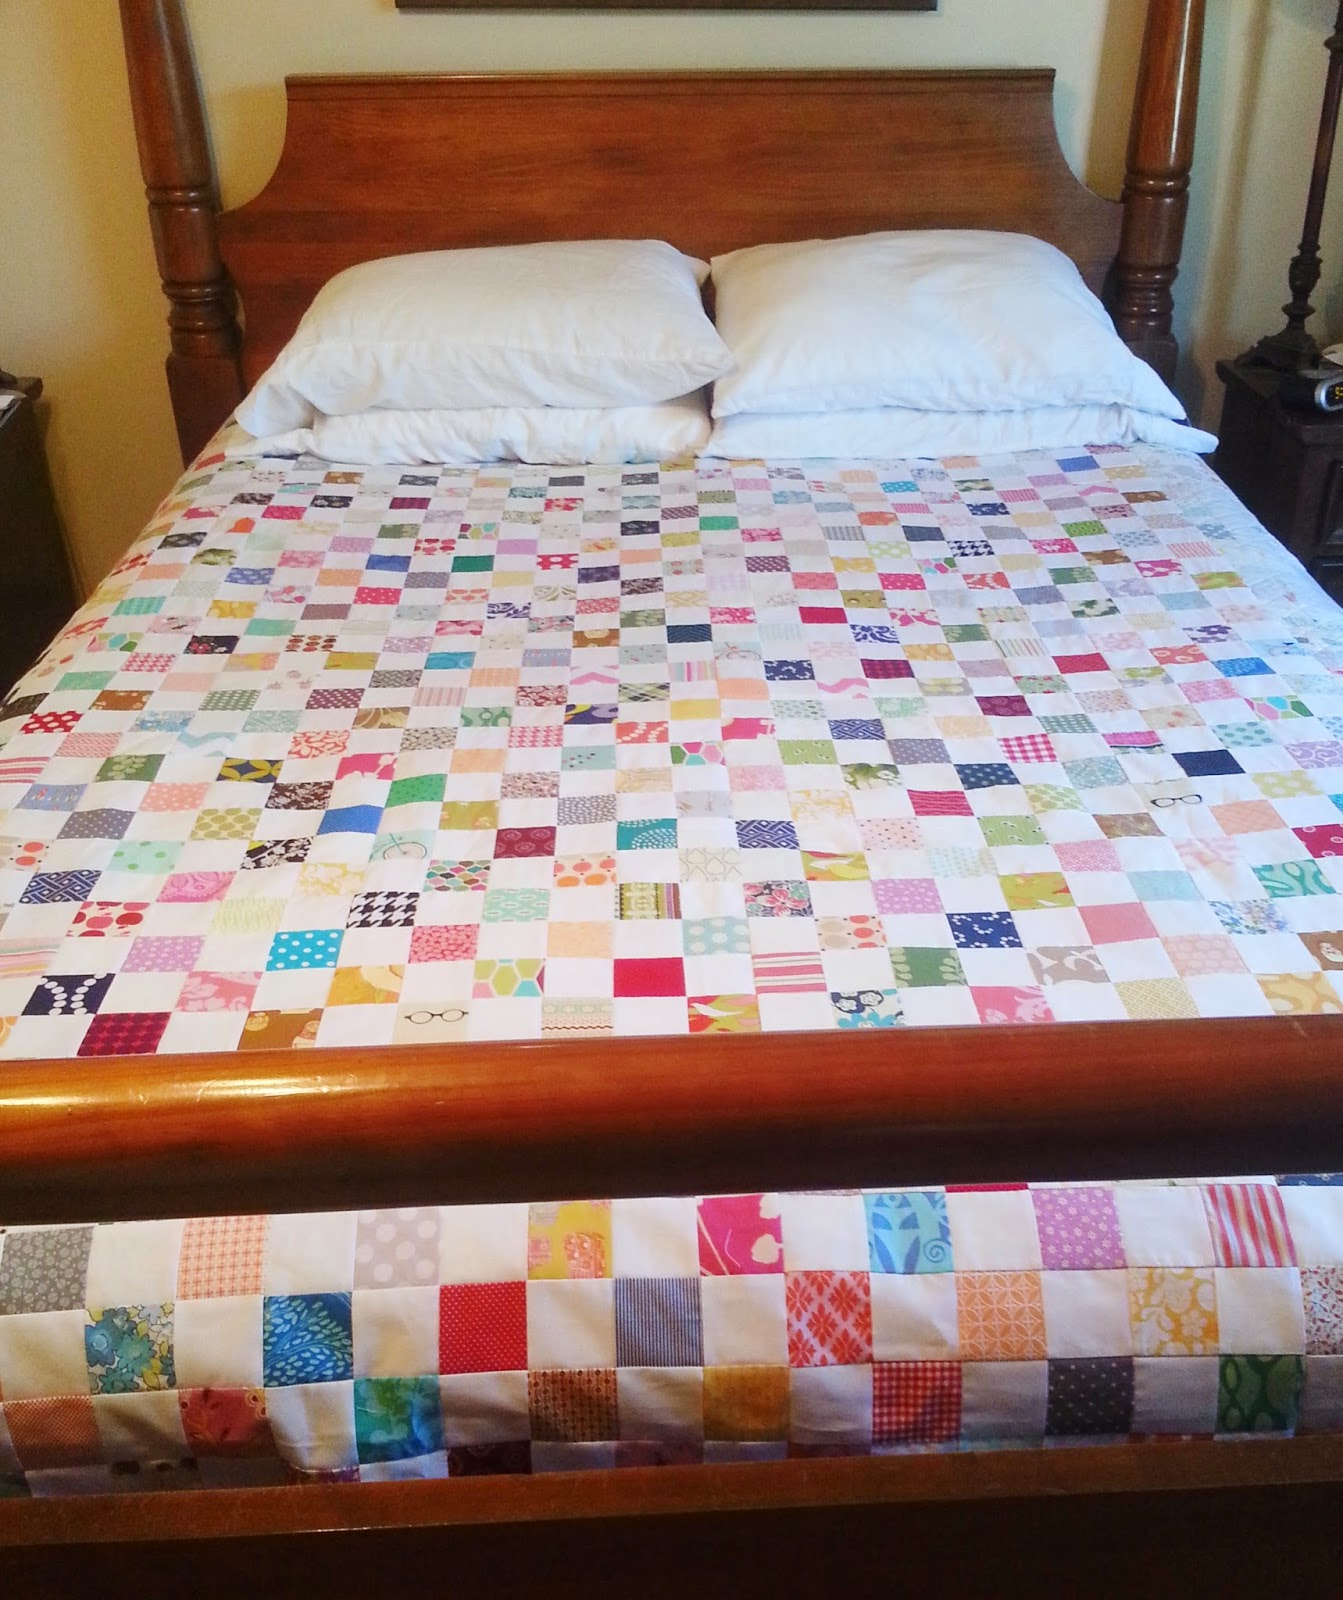 Postage Stamp Quilt on Bed